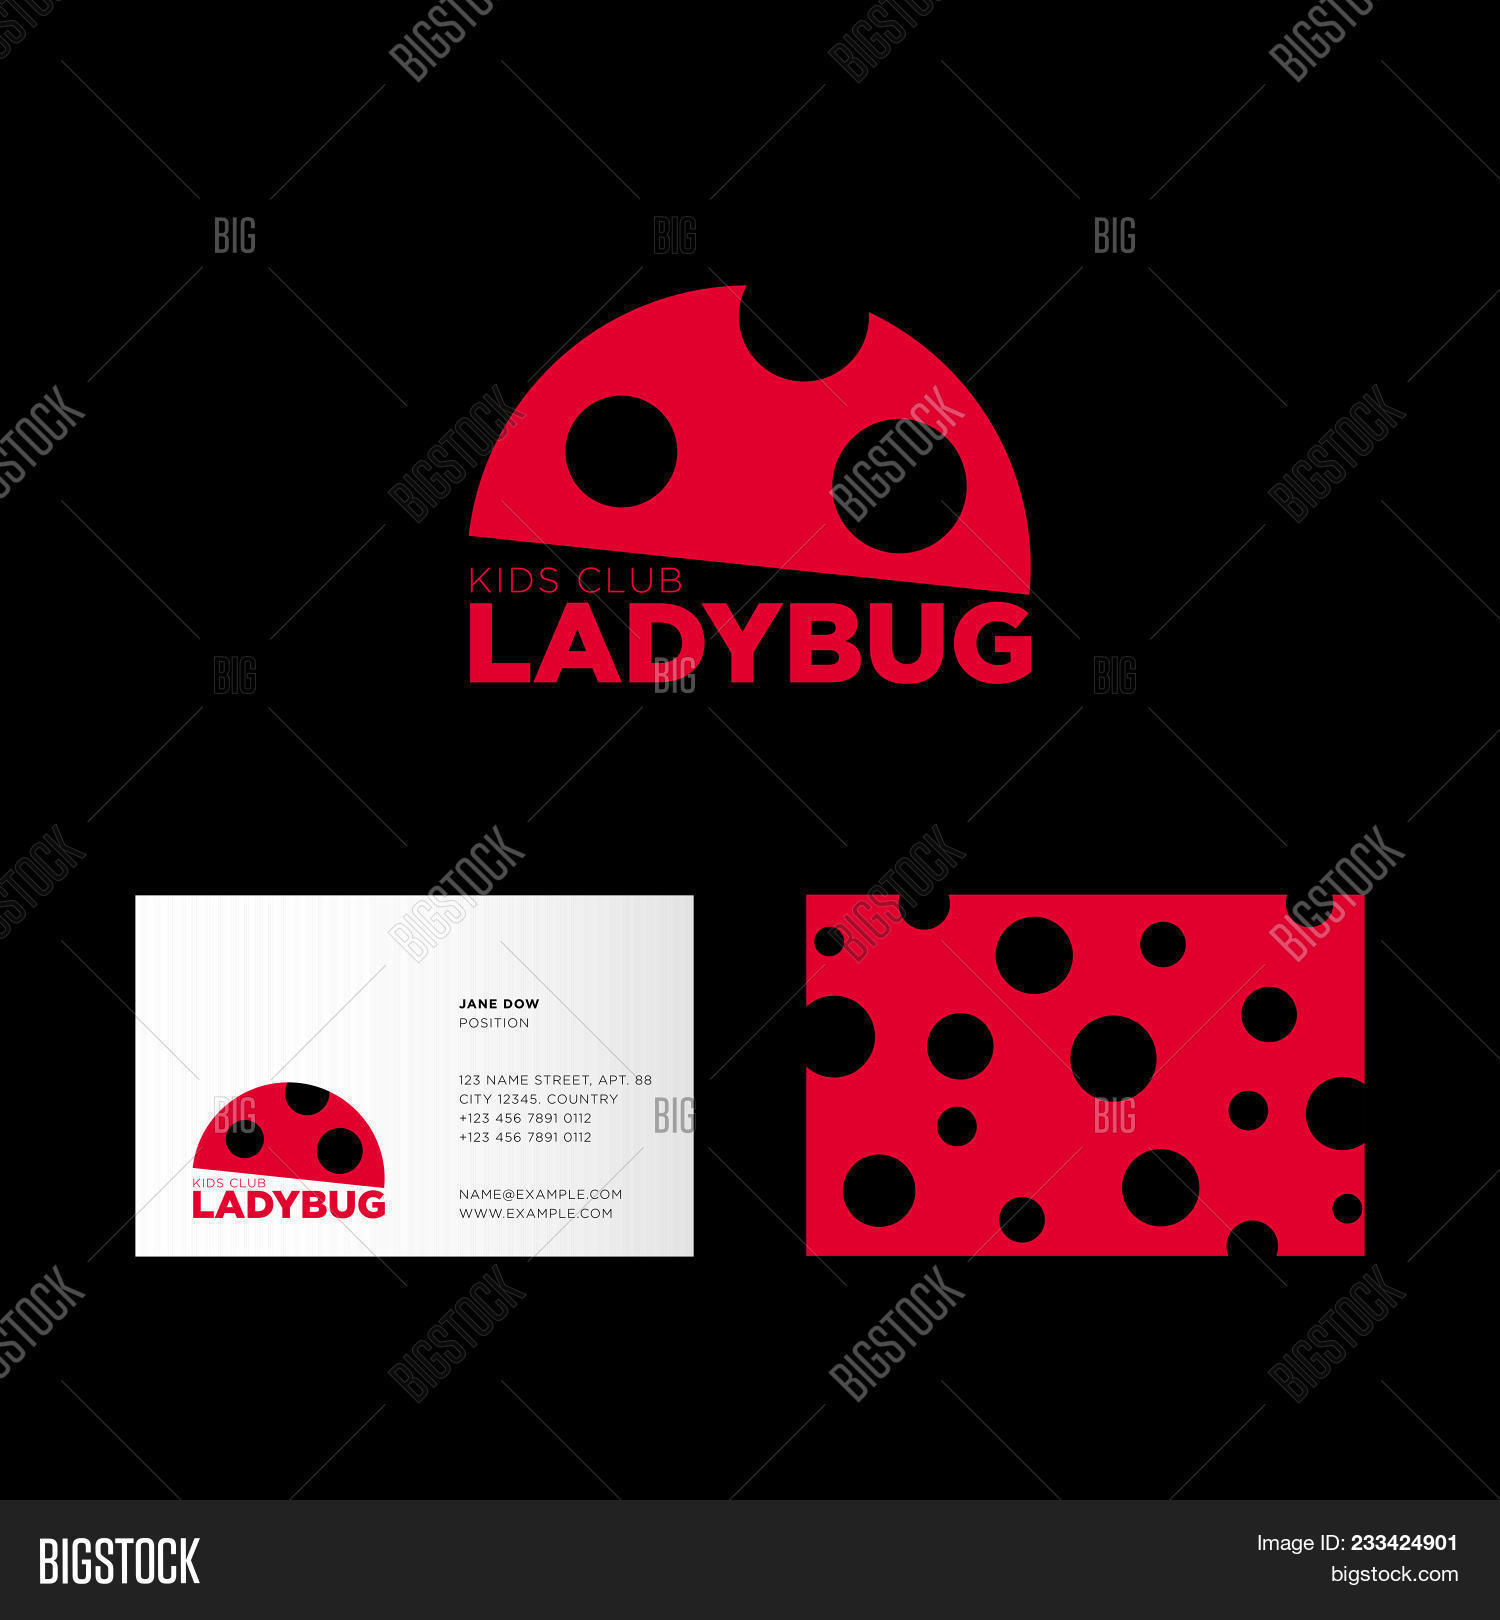 Ladybug logo kids vector photo free trial bigstock ladybug logo kids club logo flat icon of ladybug the business card and colourmoves